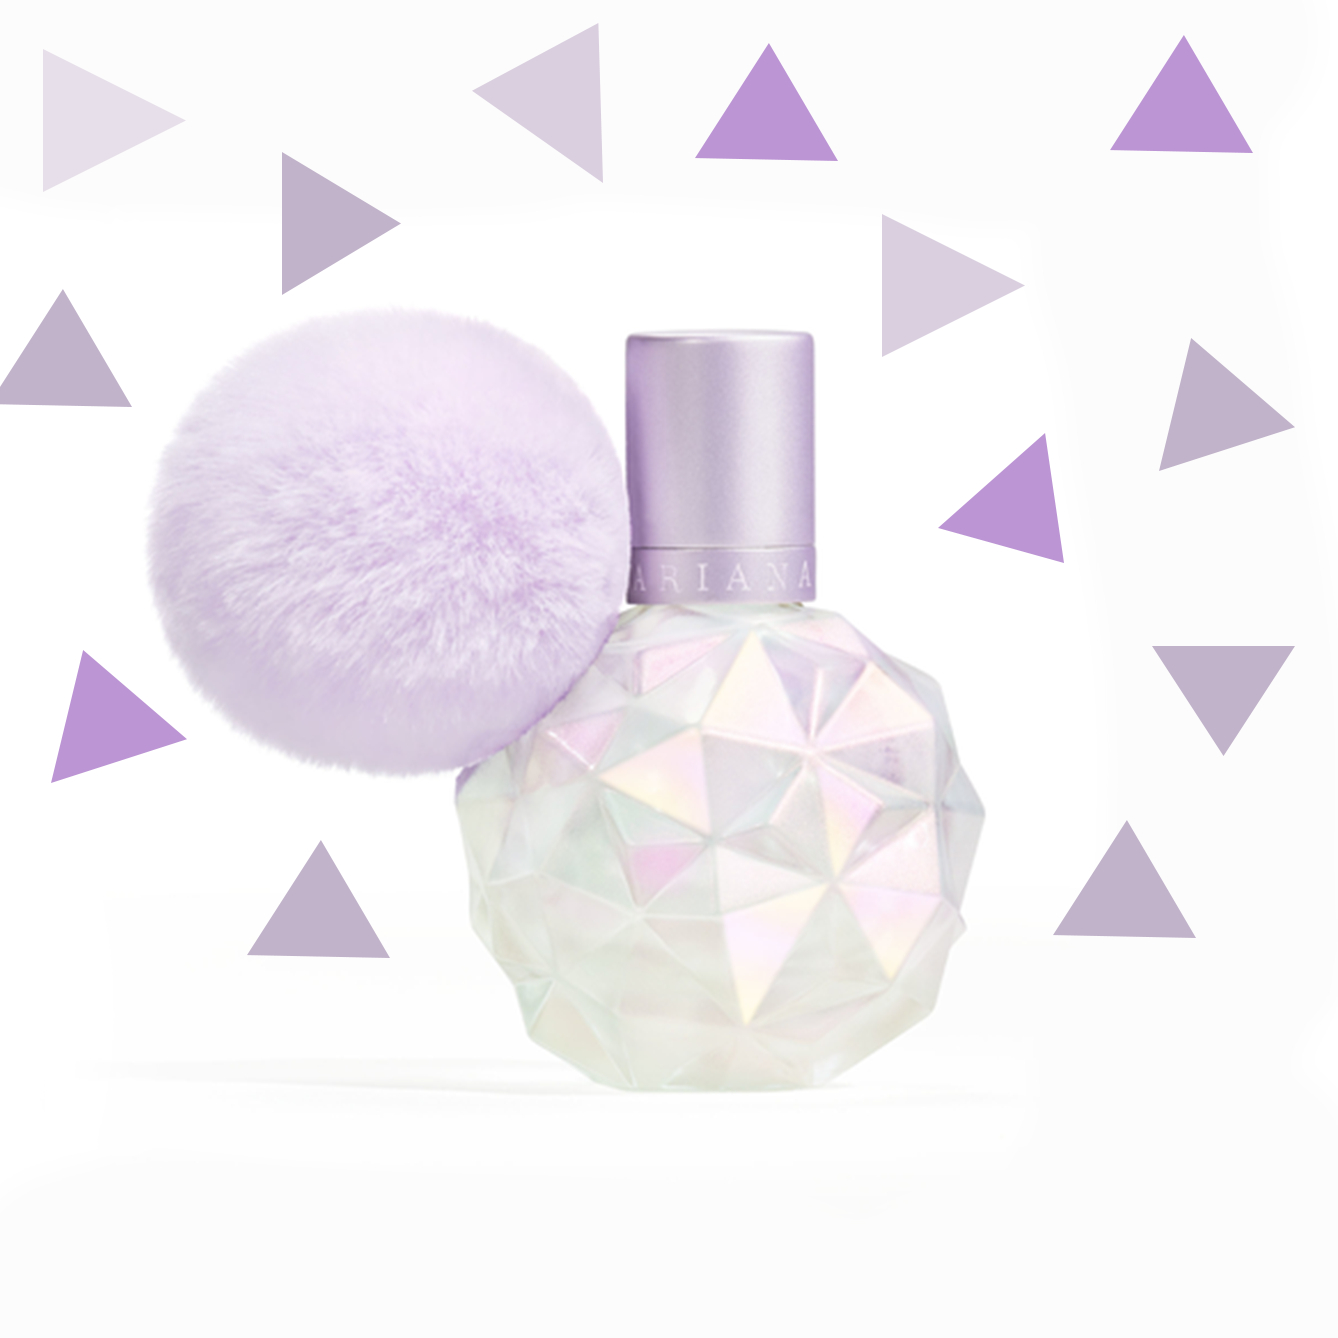 Can't Get Over the Eclipse? Try Ariana Grande's New Fragrance